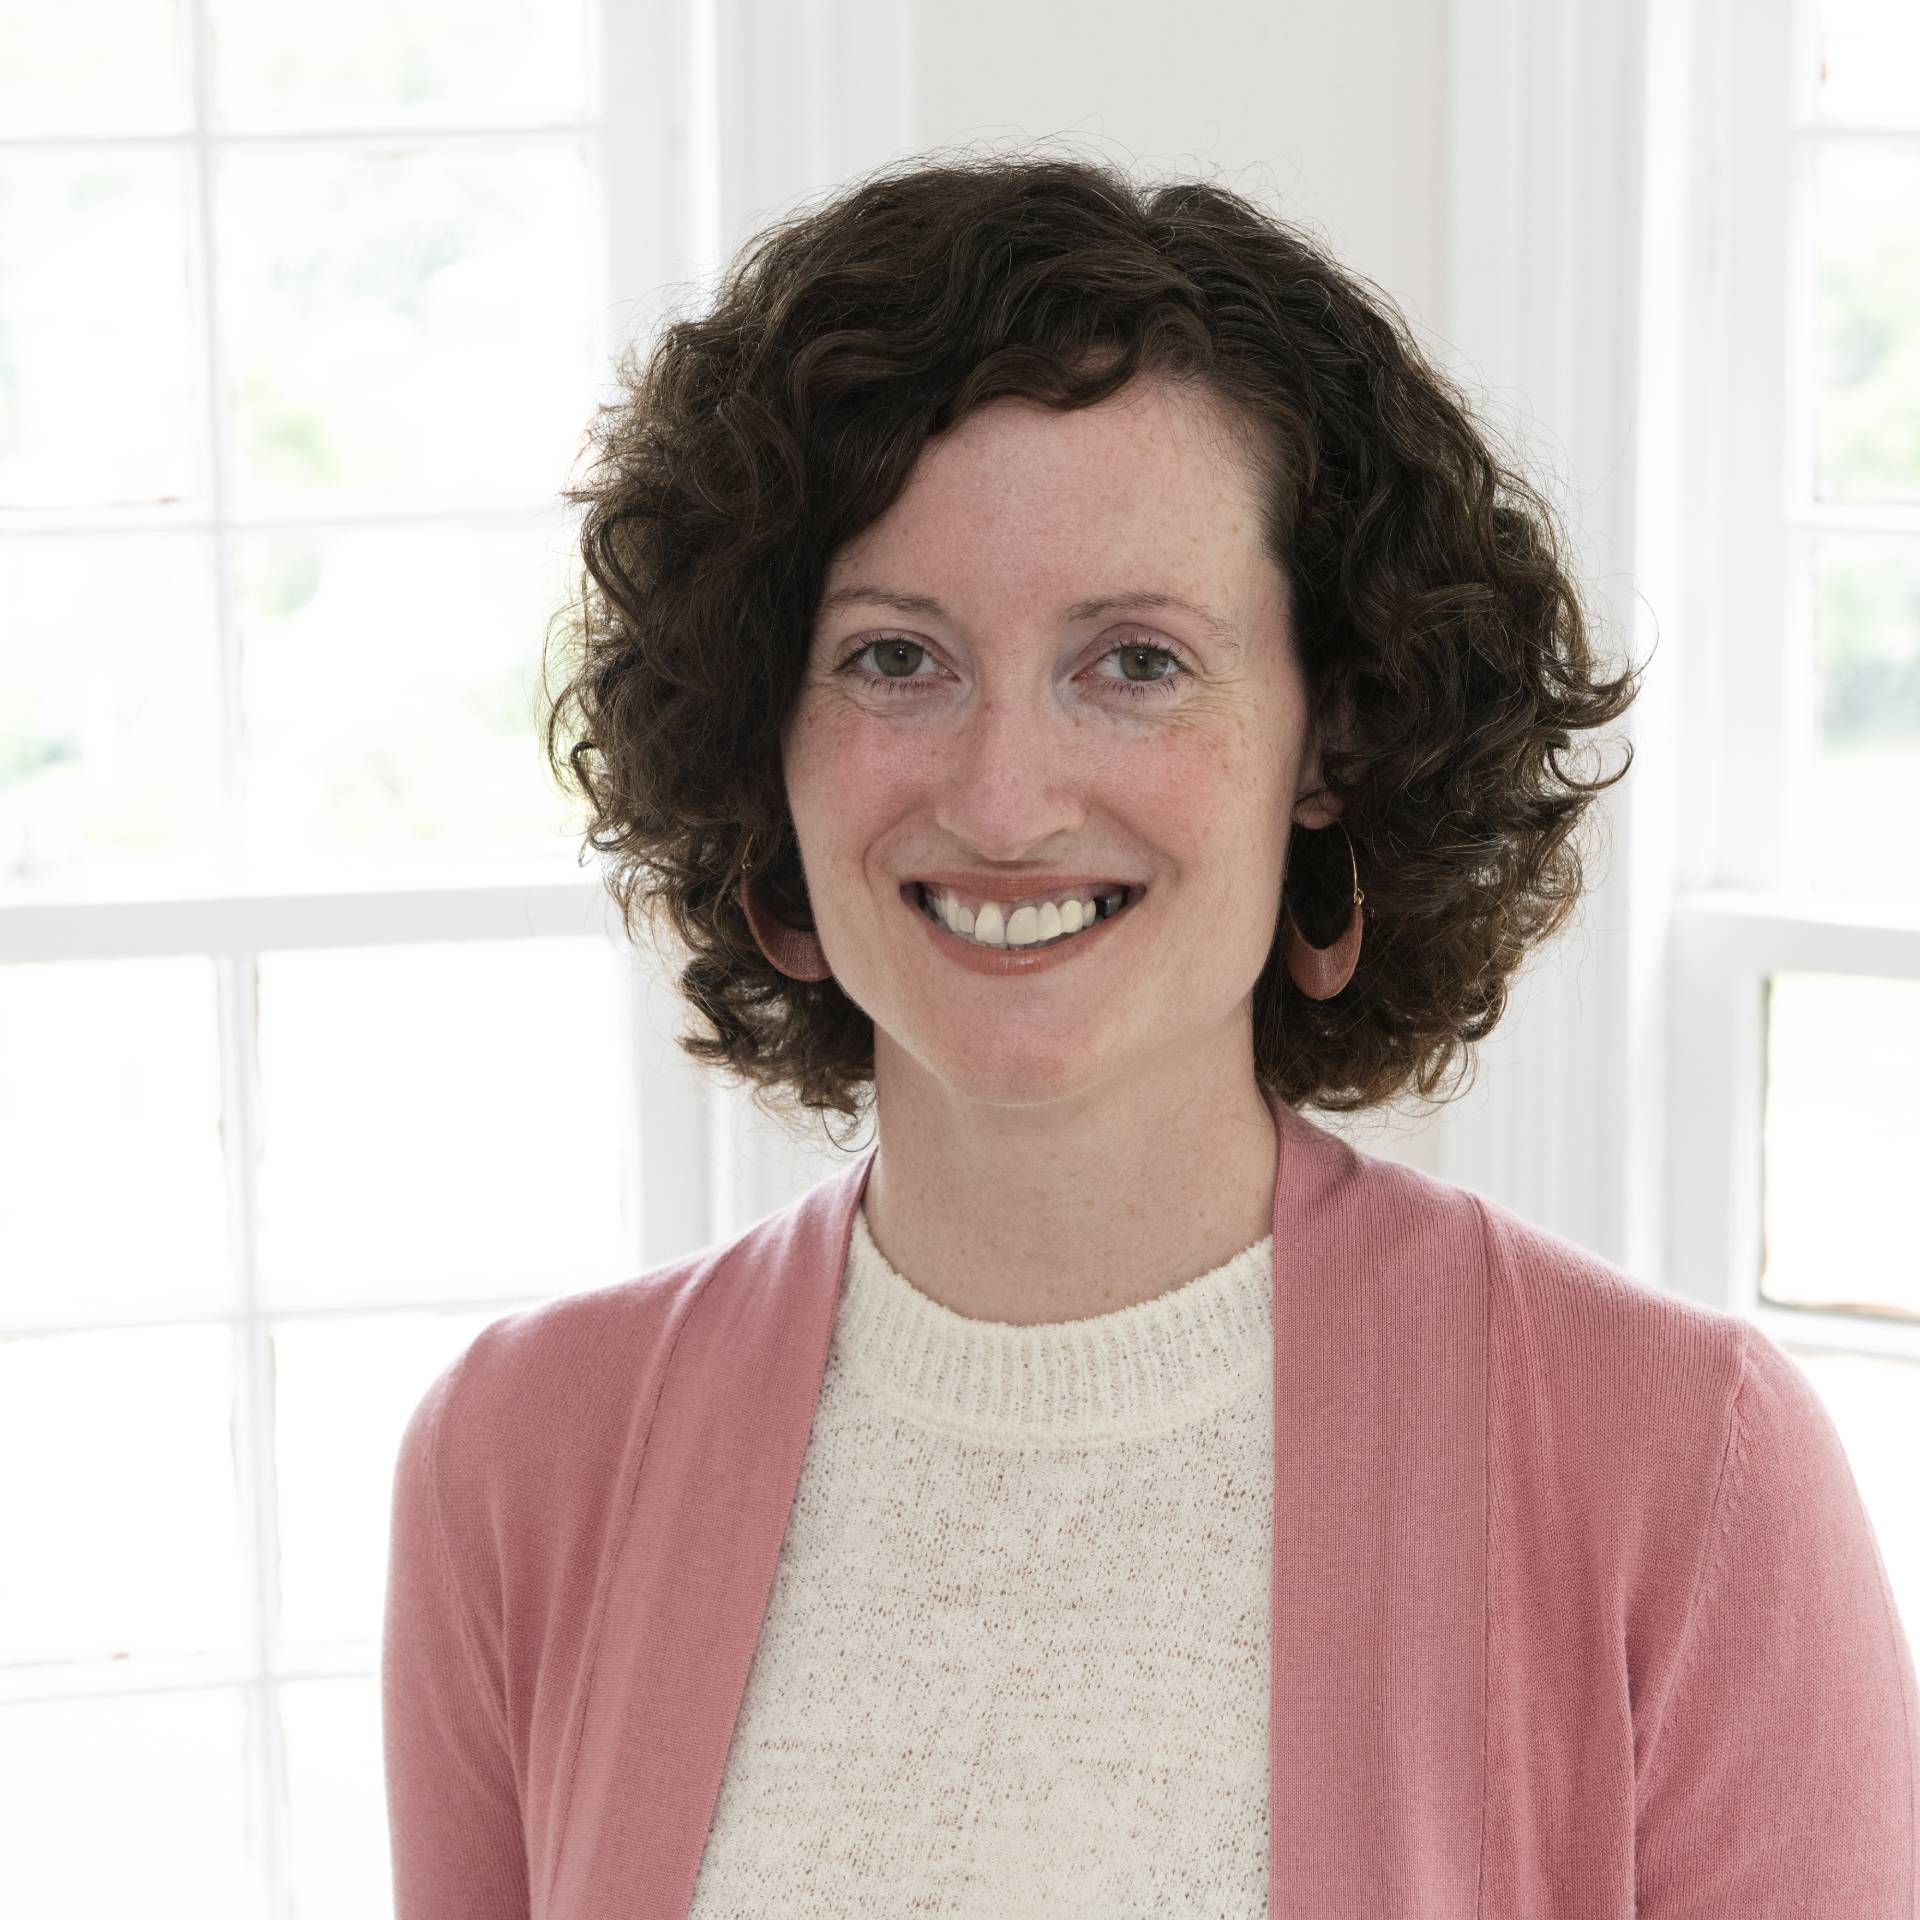 Telling the Story of the Troubles: Prison Handicrafts and Heritage Construction with Dr. Erin Hinson